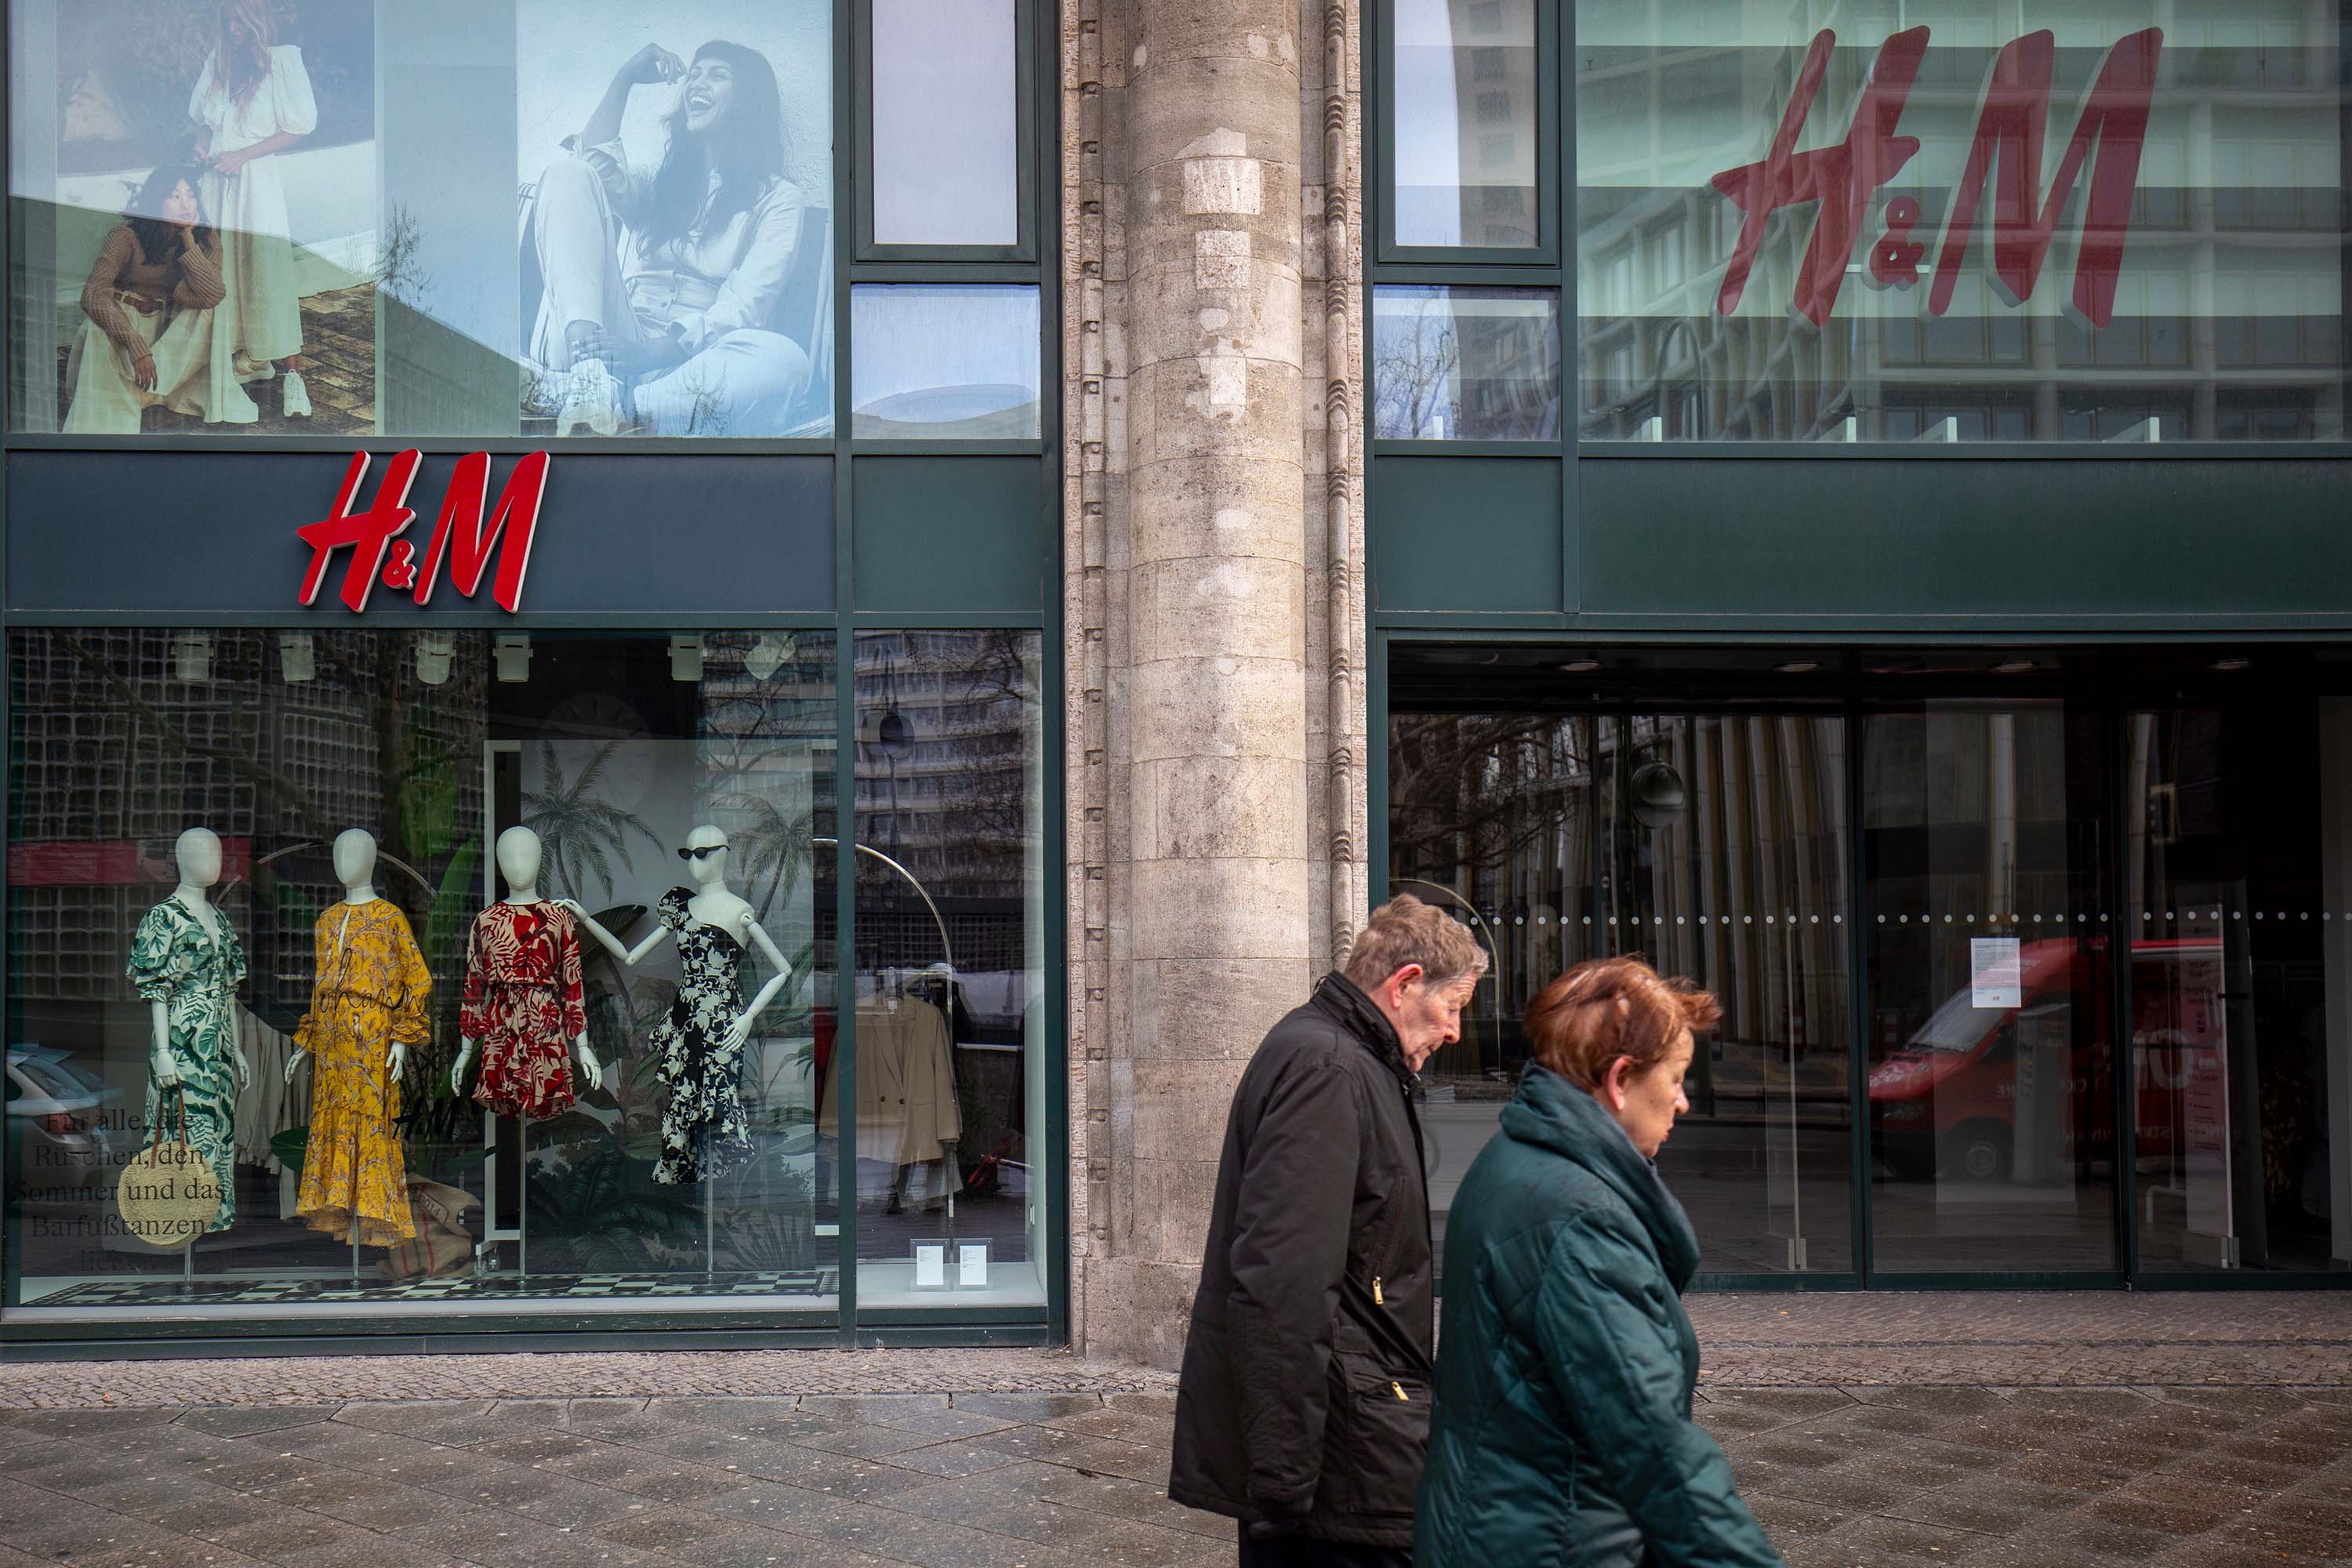 A couple walks past an H&M store in Berlin, Germany, on March 29.